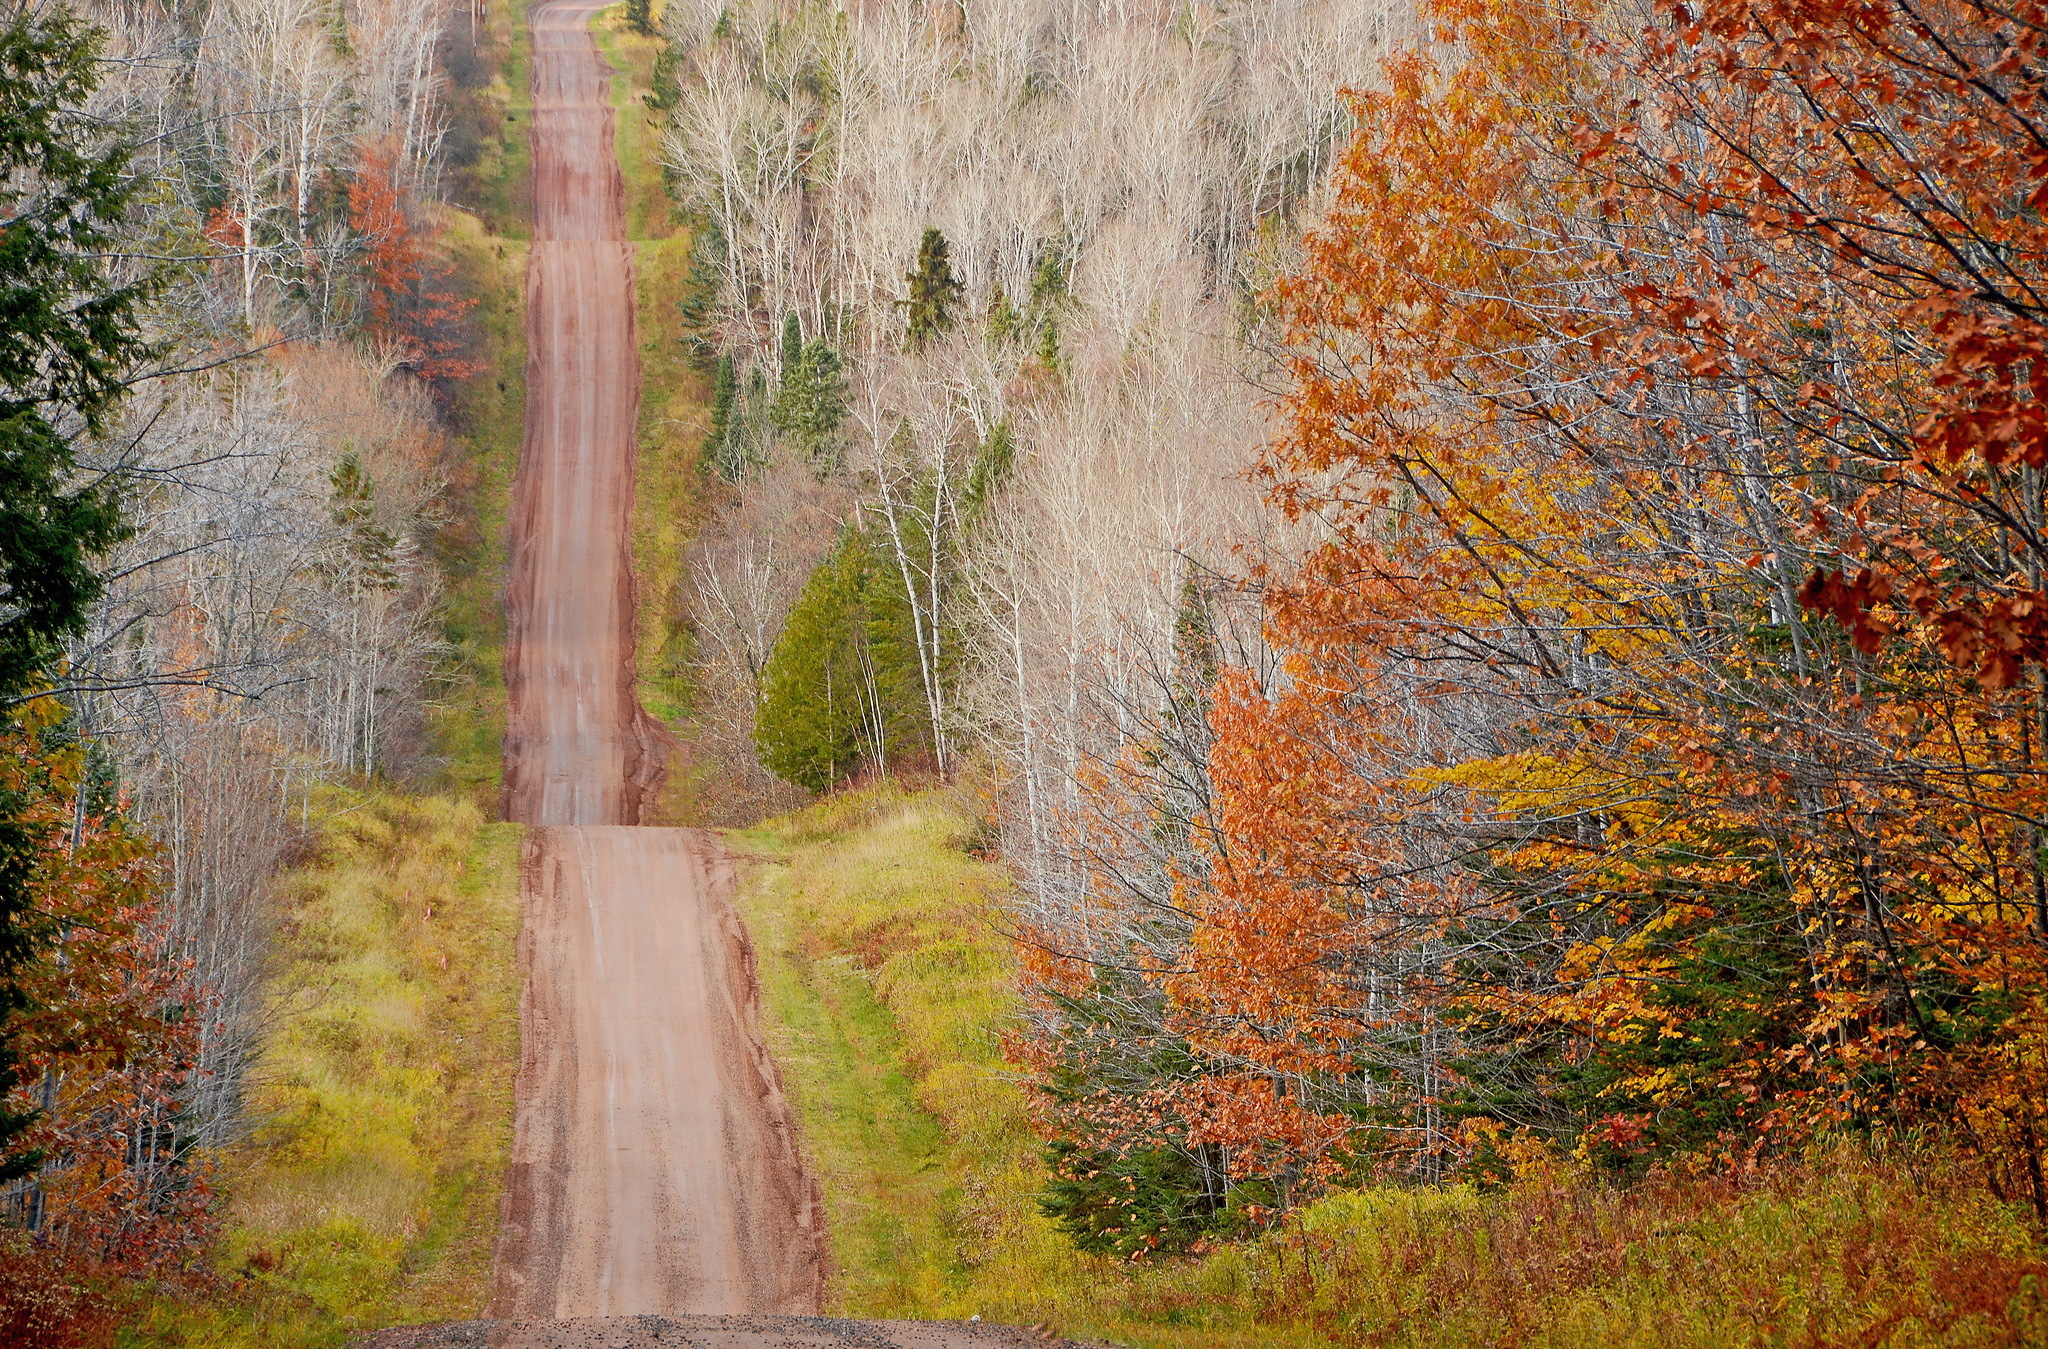 General 2048x1349 landscape fall trees green brown dirtroad nature